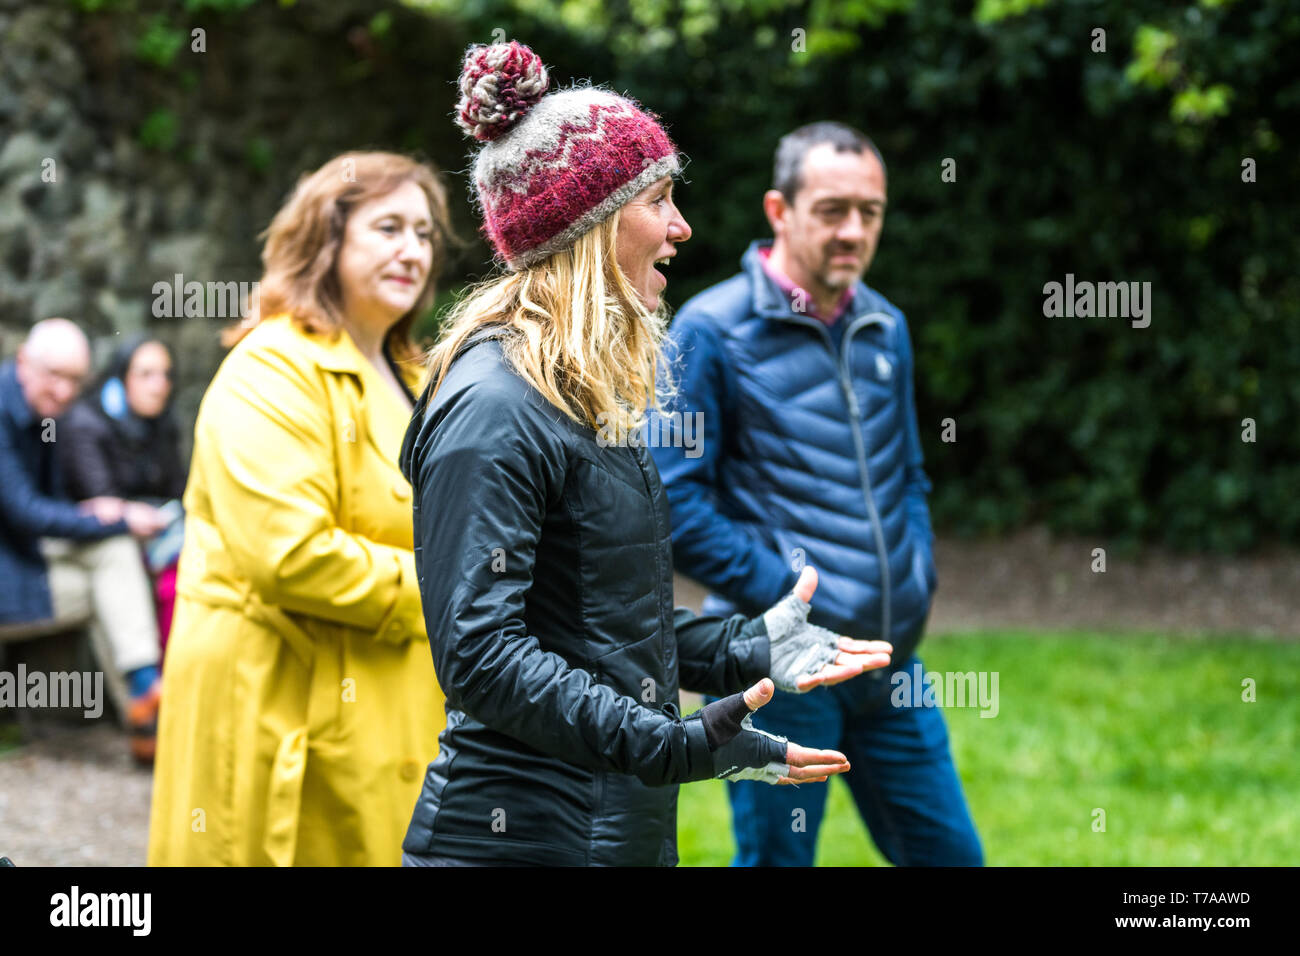 Sun 5 May 2019. Edinburgh, UK. Active Nation Commissioner for Scotland Lee Craigie speaks at Open Streets reception in Dunbar's Garden Close Gardens. - Stock Image